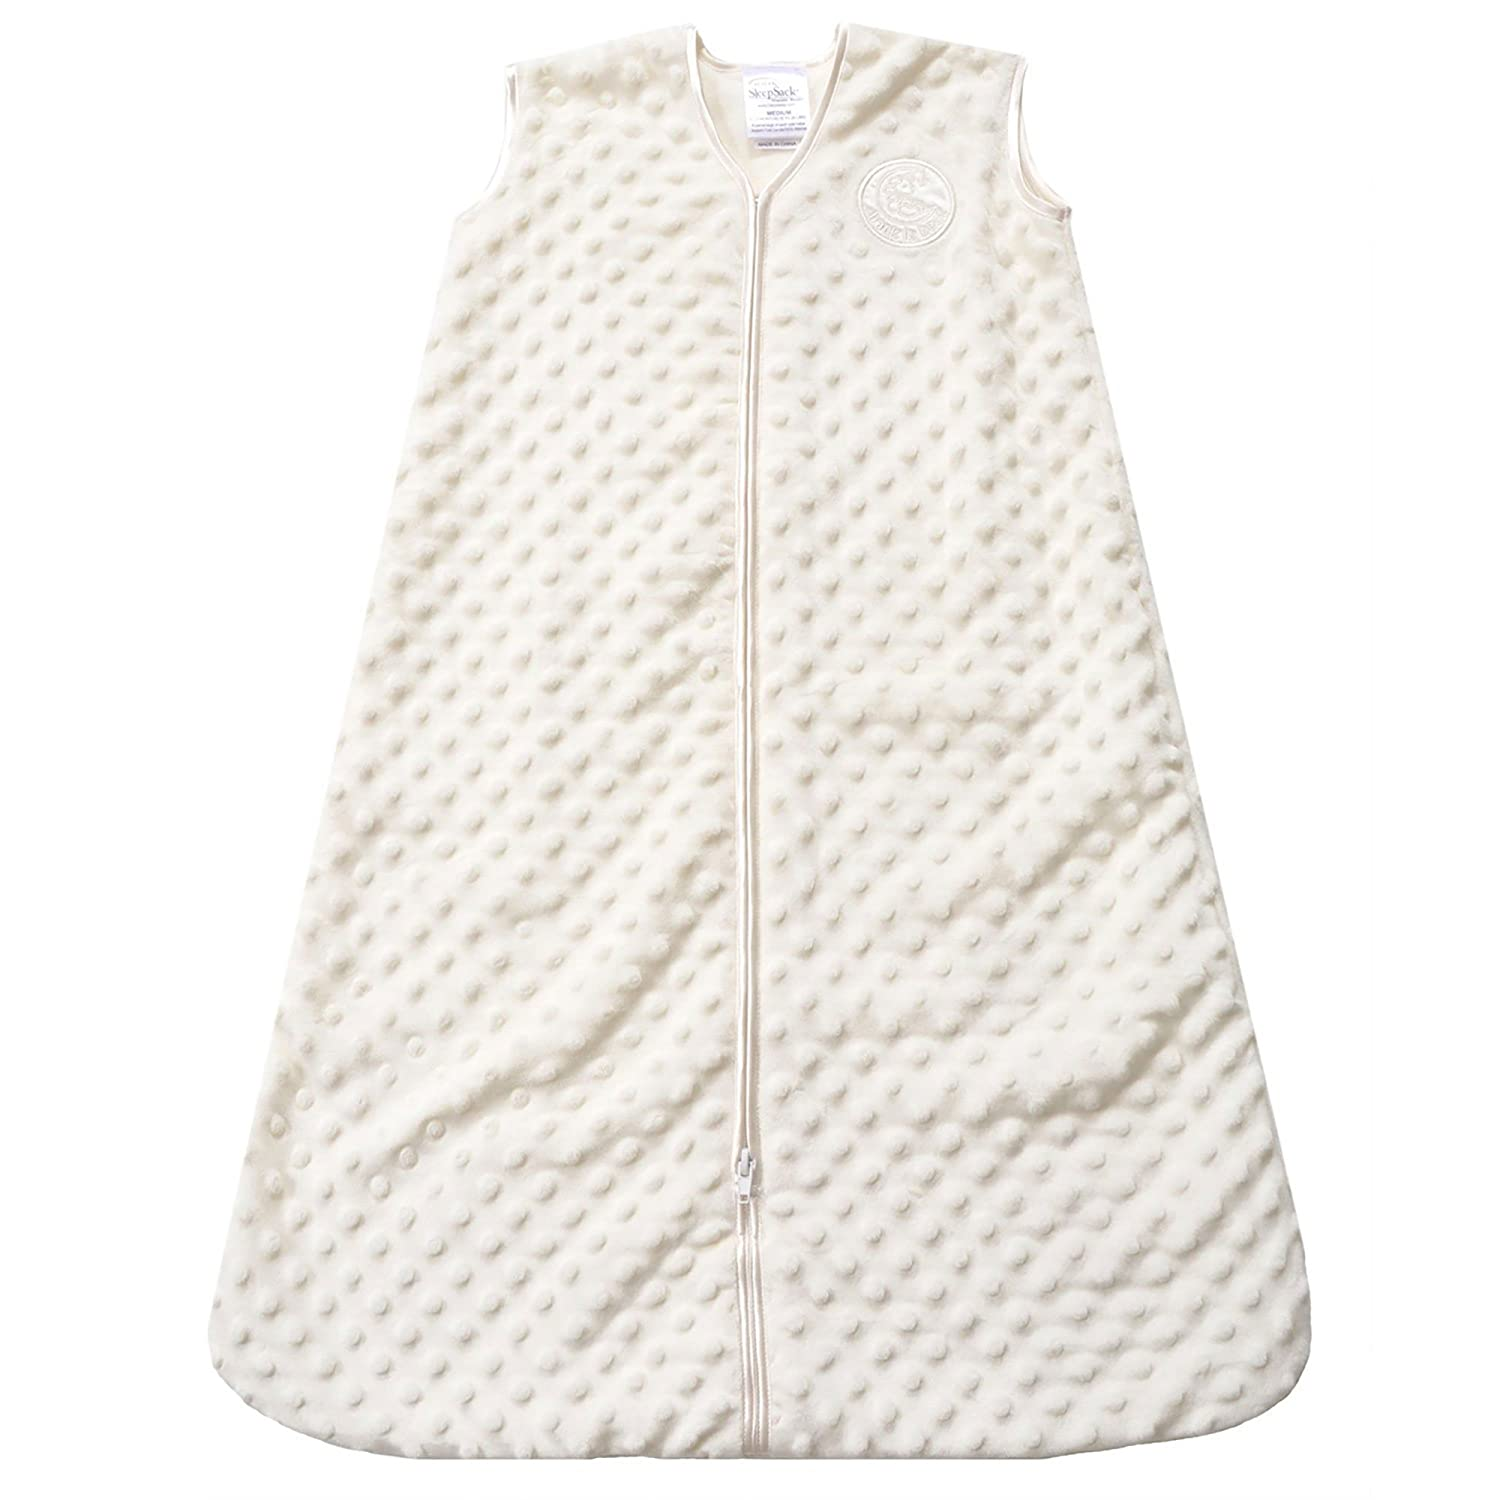 HALO Sleepsack Wearable Blanket, Velboa, Cream Plush Dots, Large: Baby